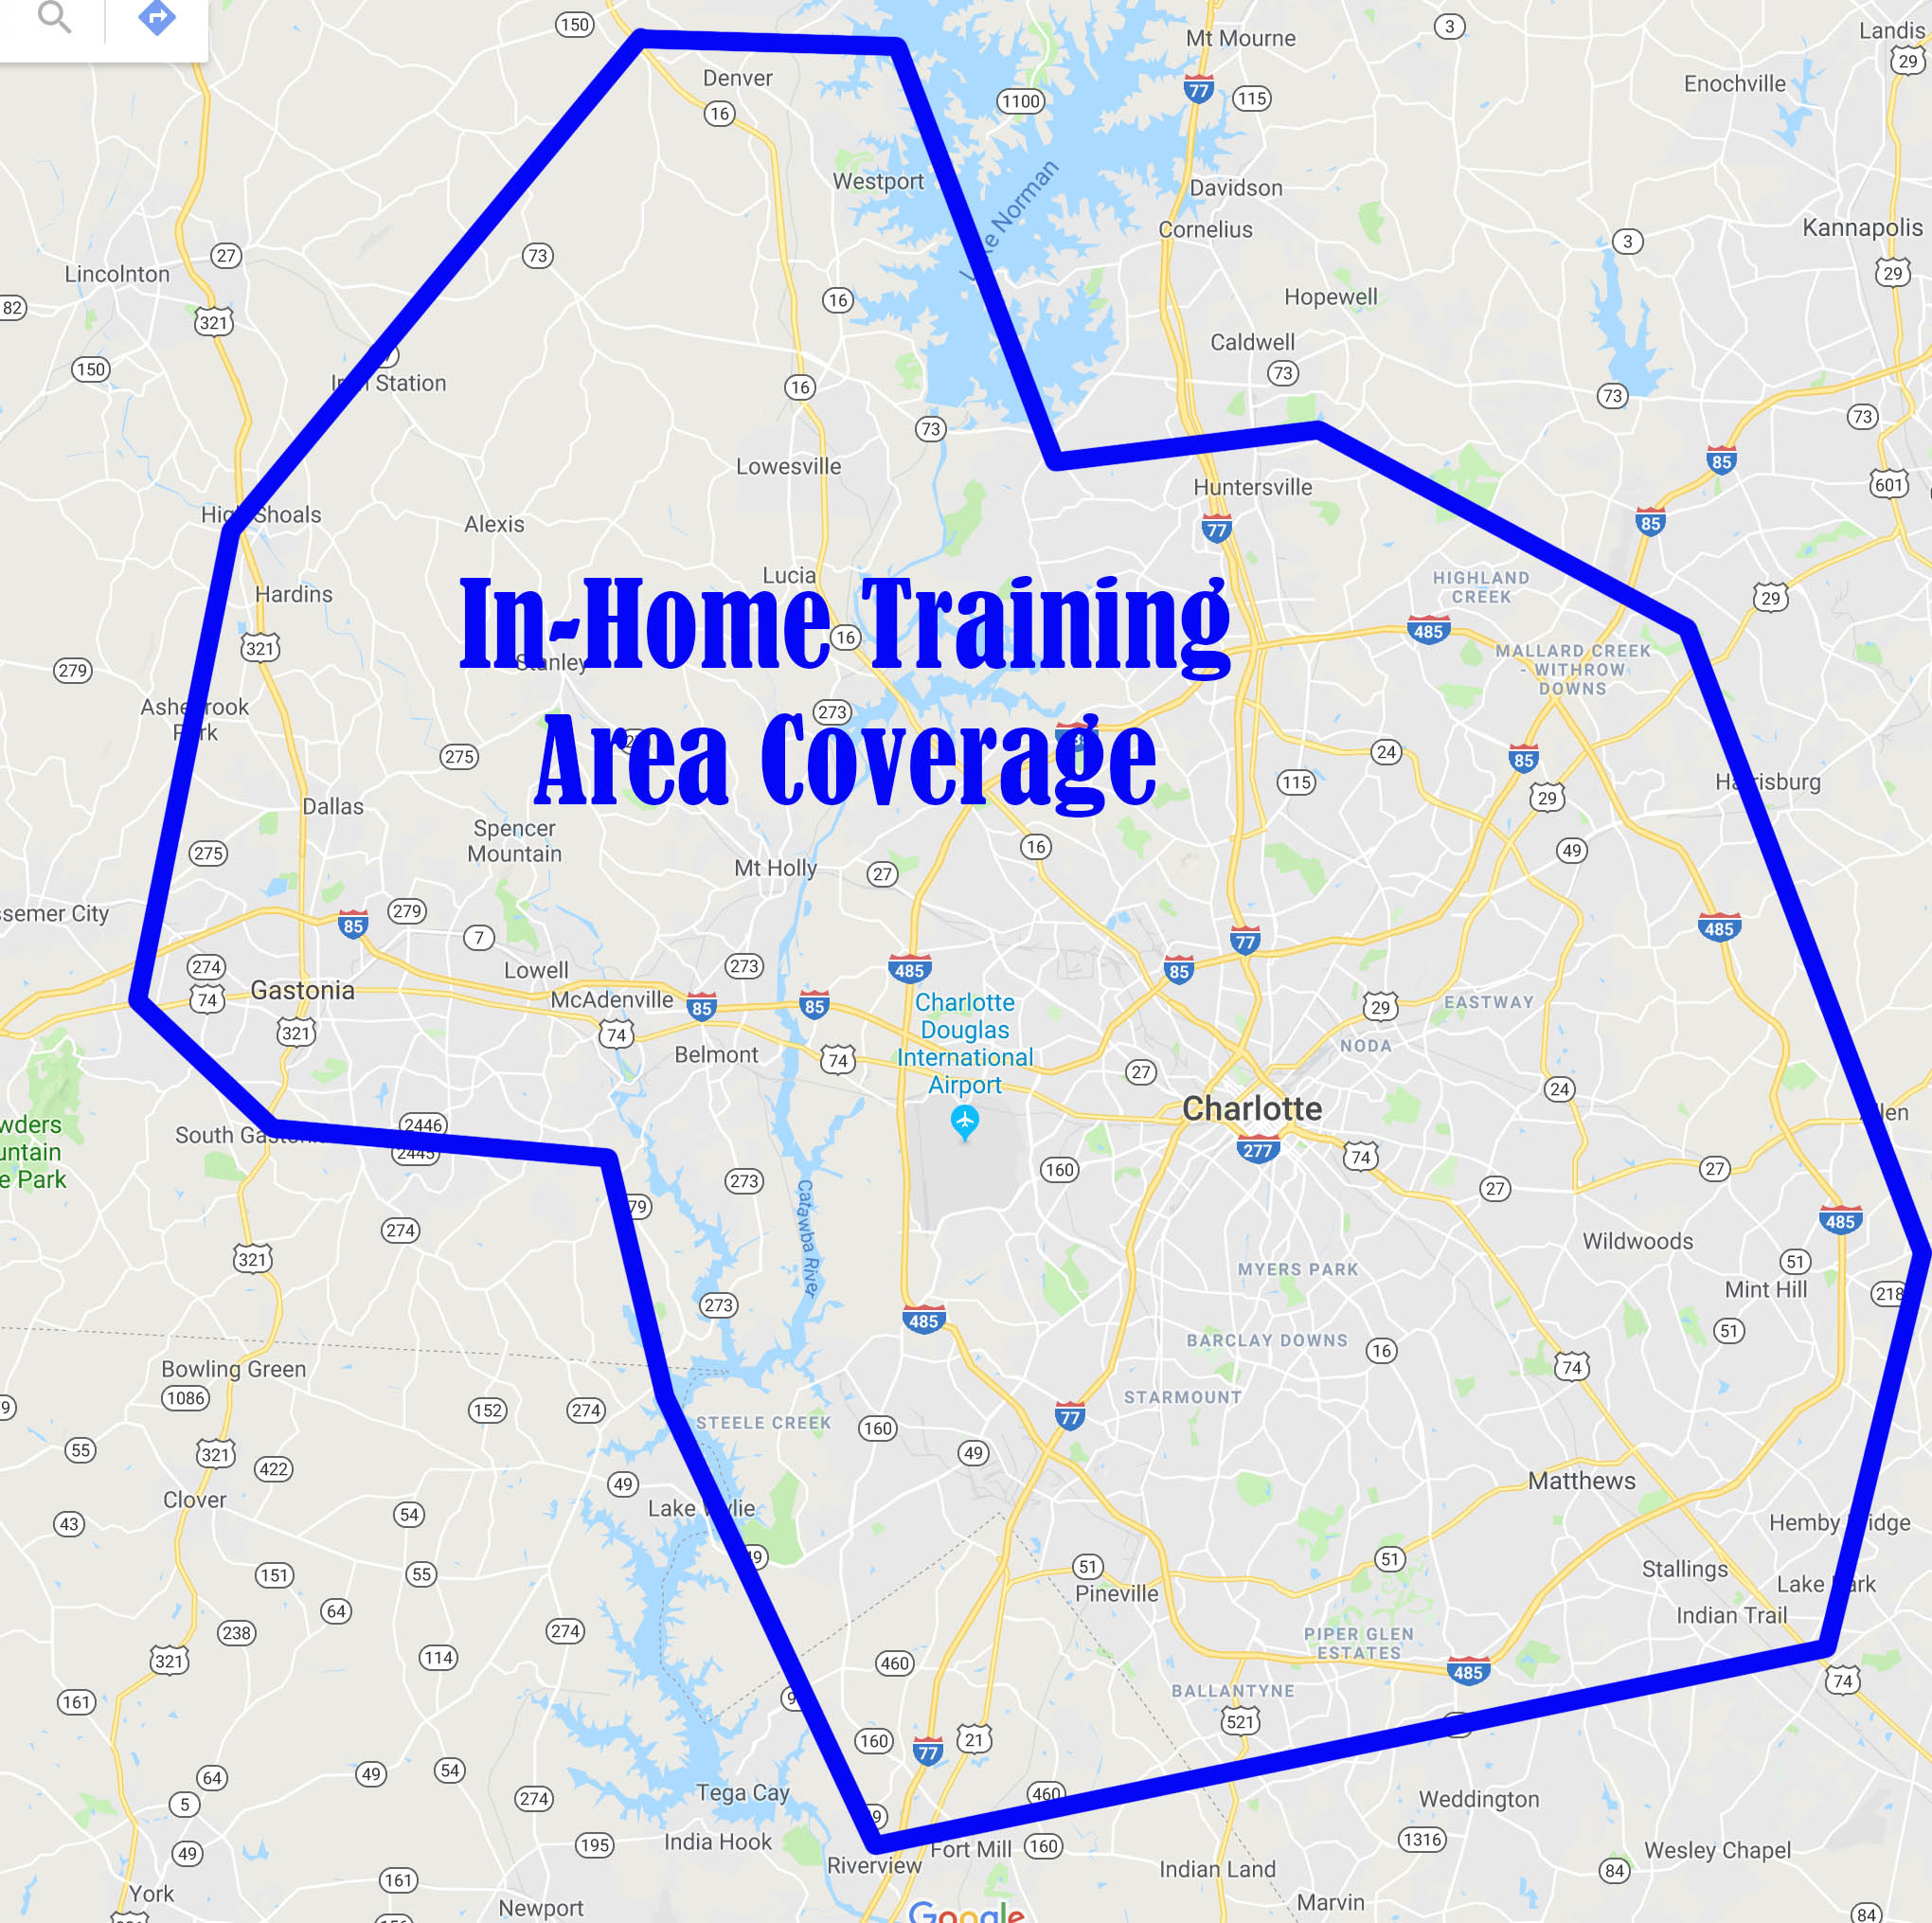 map charlotte nc my blog jetblue route map washington county maps - dog trainer vast experience formal education charlotte nc and inhomemapunderstandingourdogscom map charlotte nc my blog map charlotte nc my blog